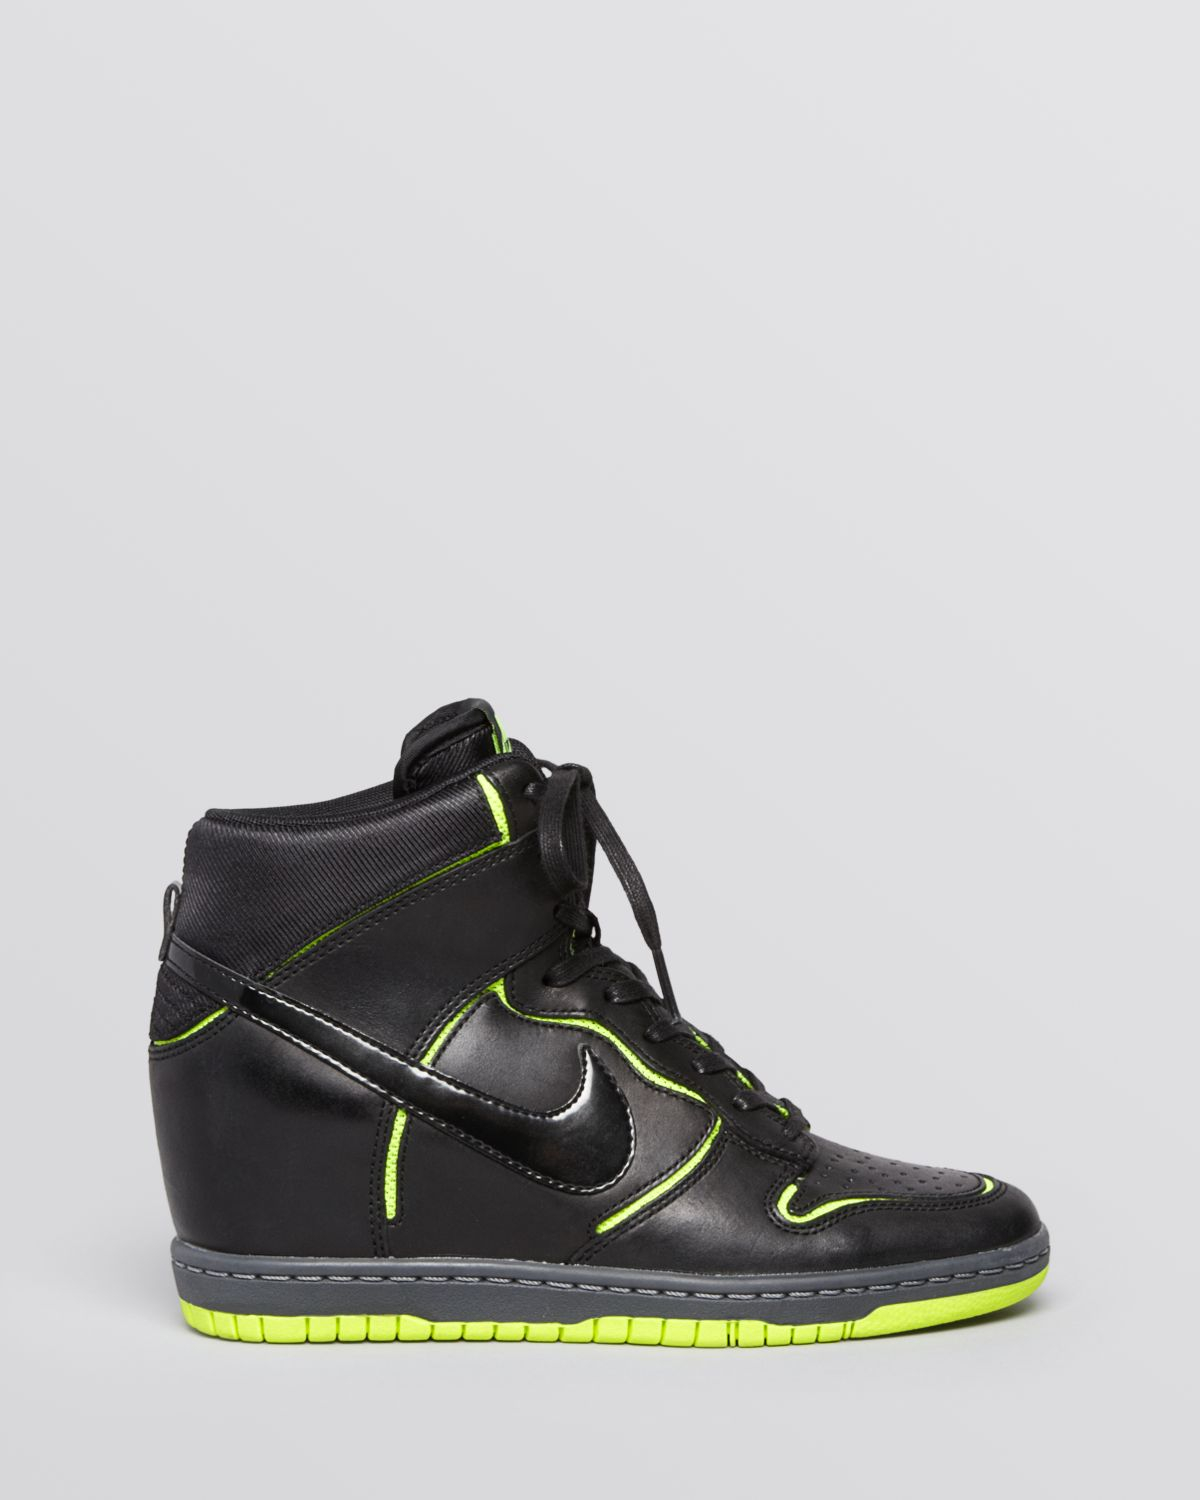 994bbb1c3c7 usa nike wmns dunk sky hi blackout 74023 138f4  buy gallery. previously  sold at bloomingdales womens wedge sneakers womens nike dunk womens nike  dunk